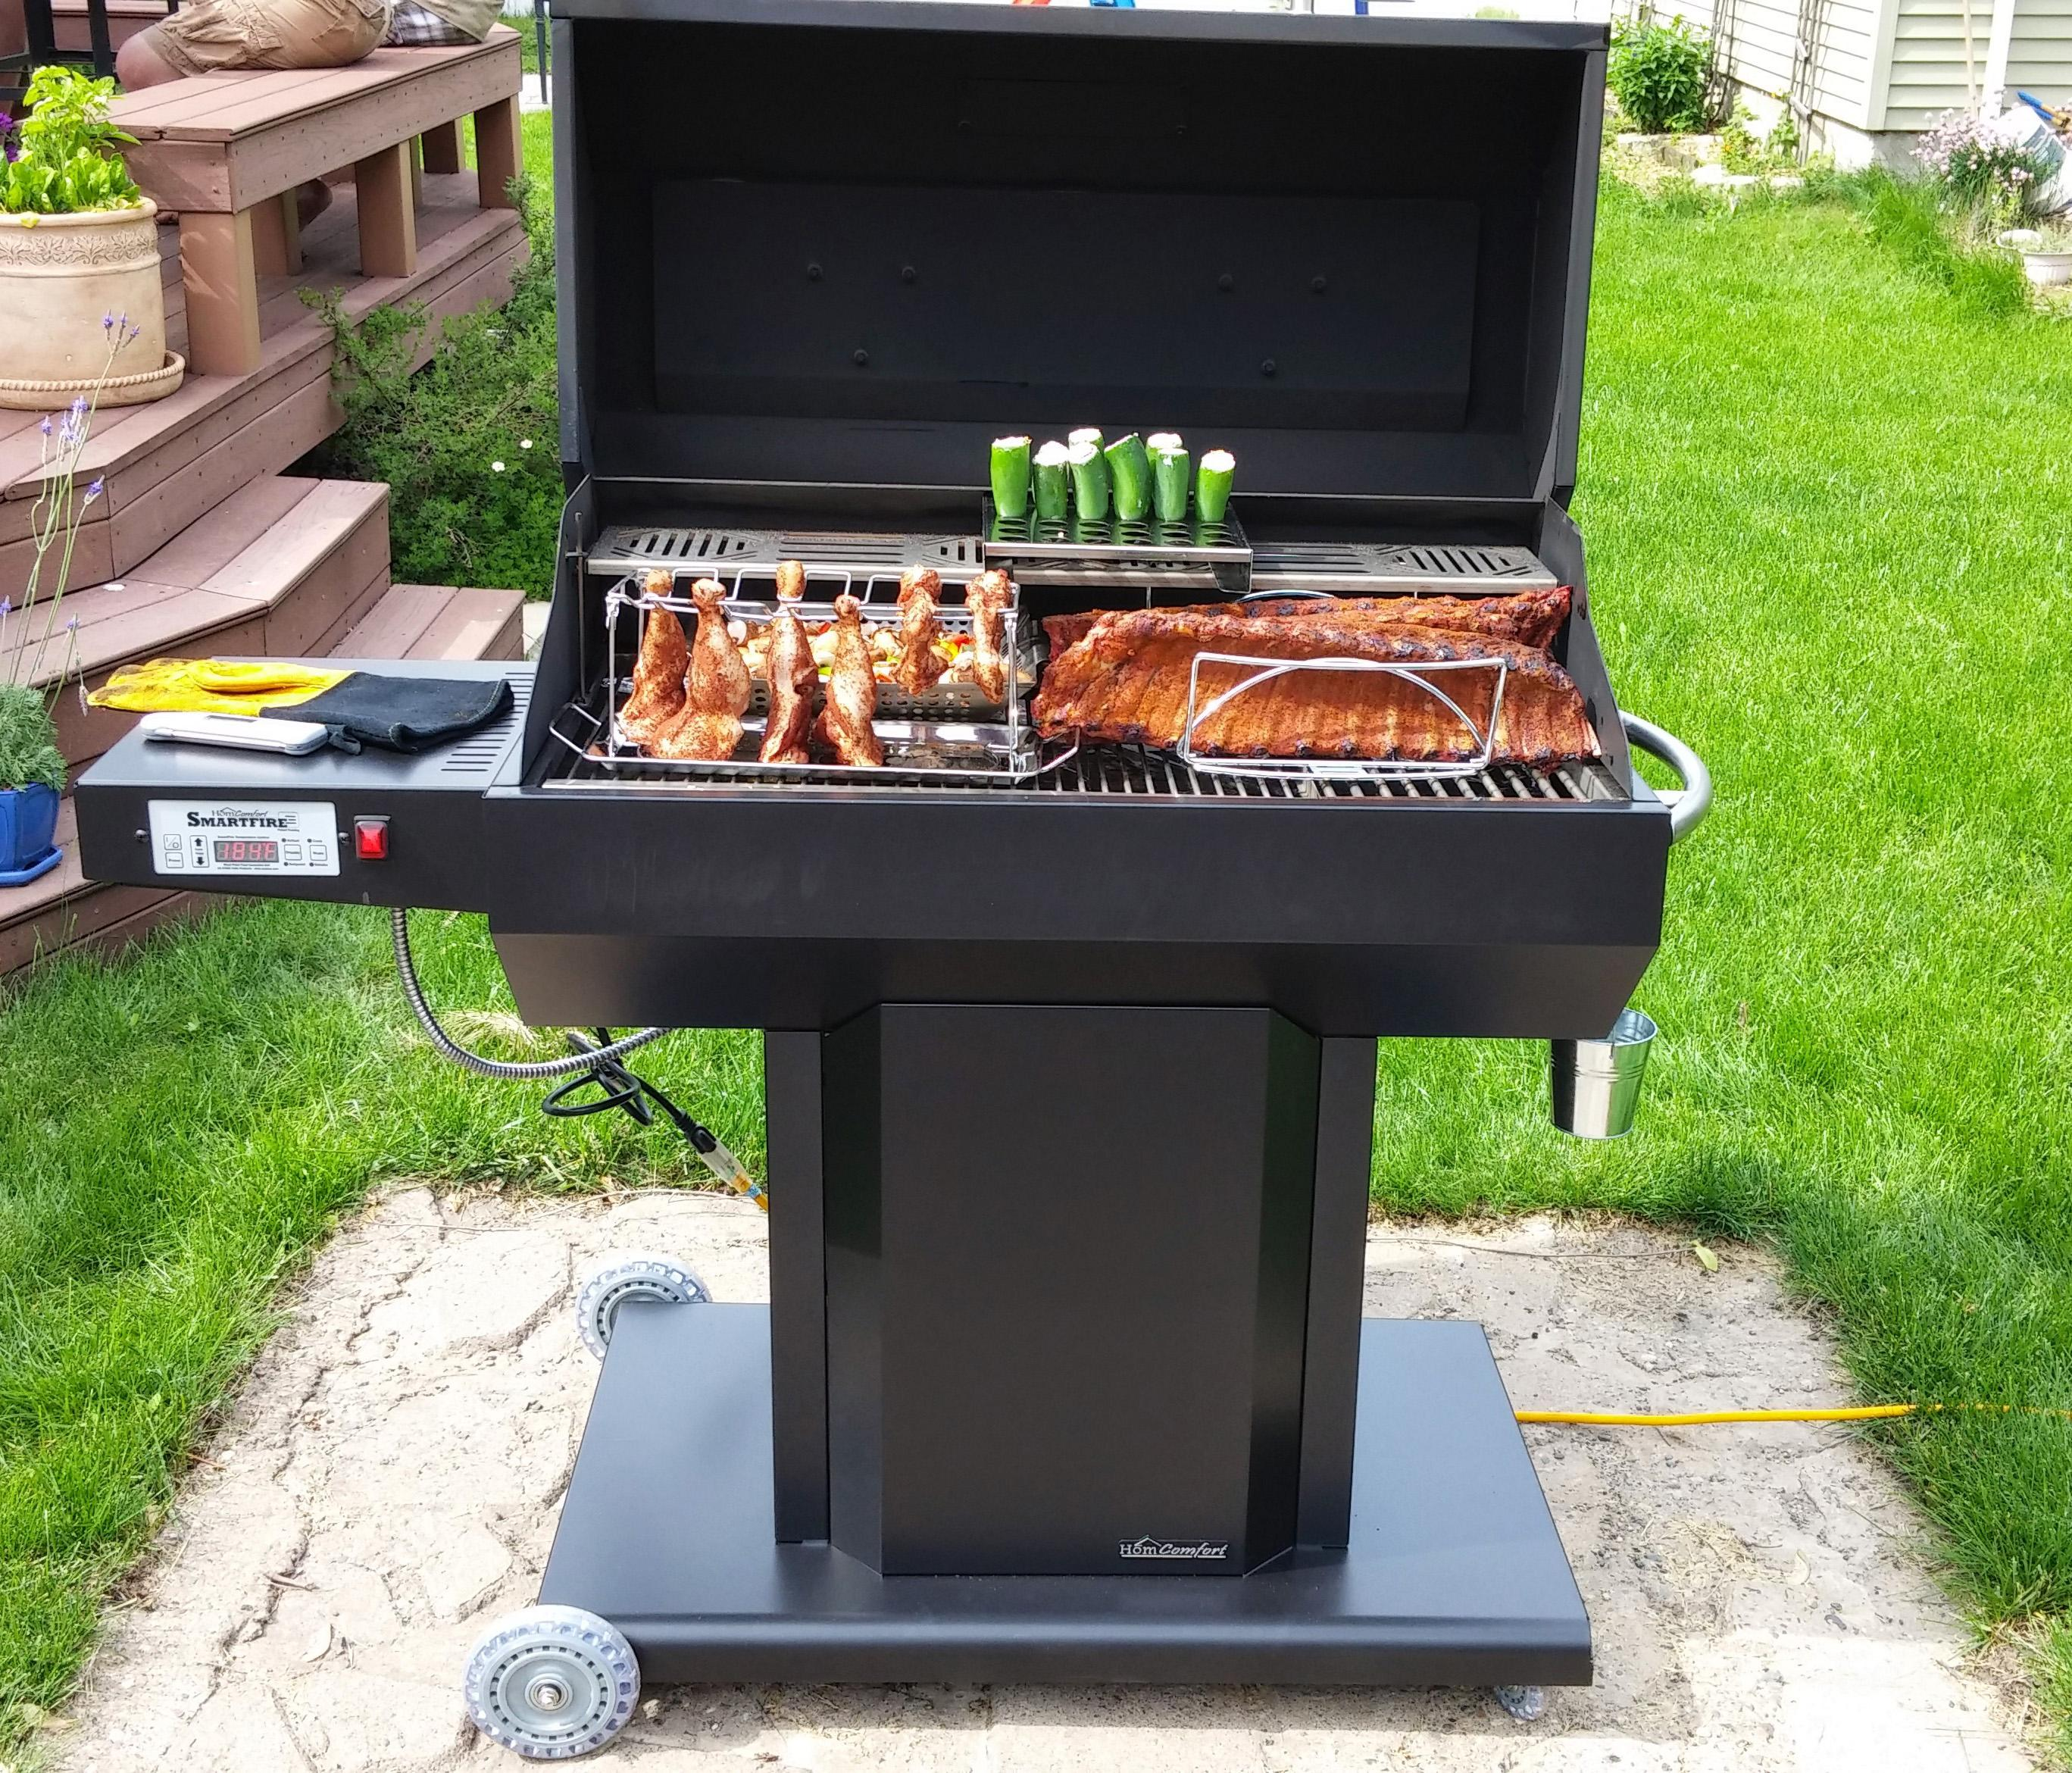 Homcomfort pg36 pellet grill smoker large combination grills and smokers patio - Pellet grills and smokers ...